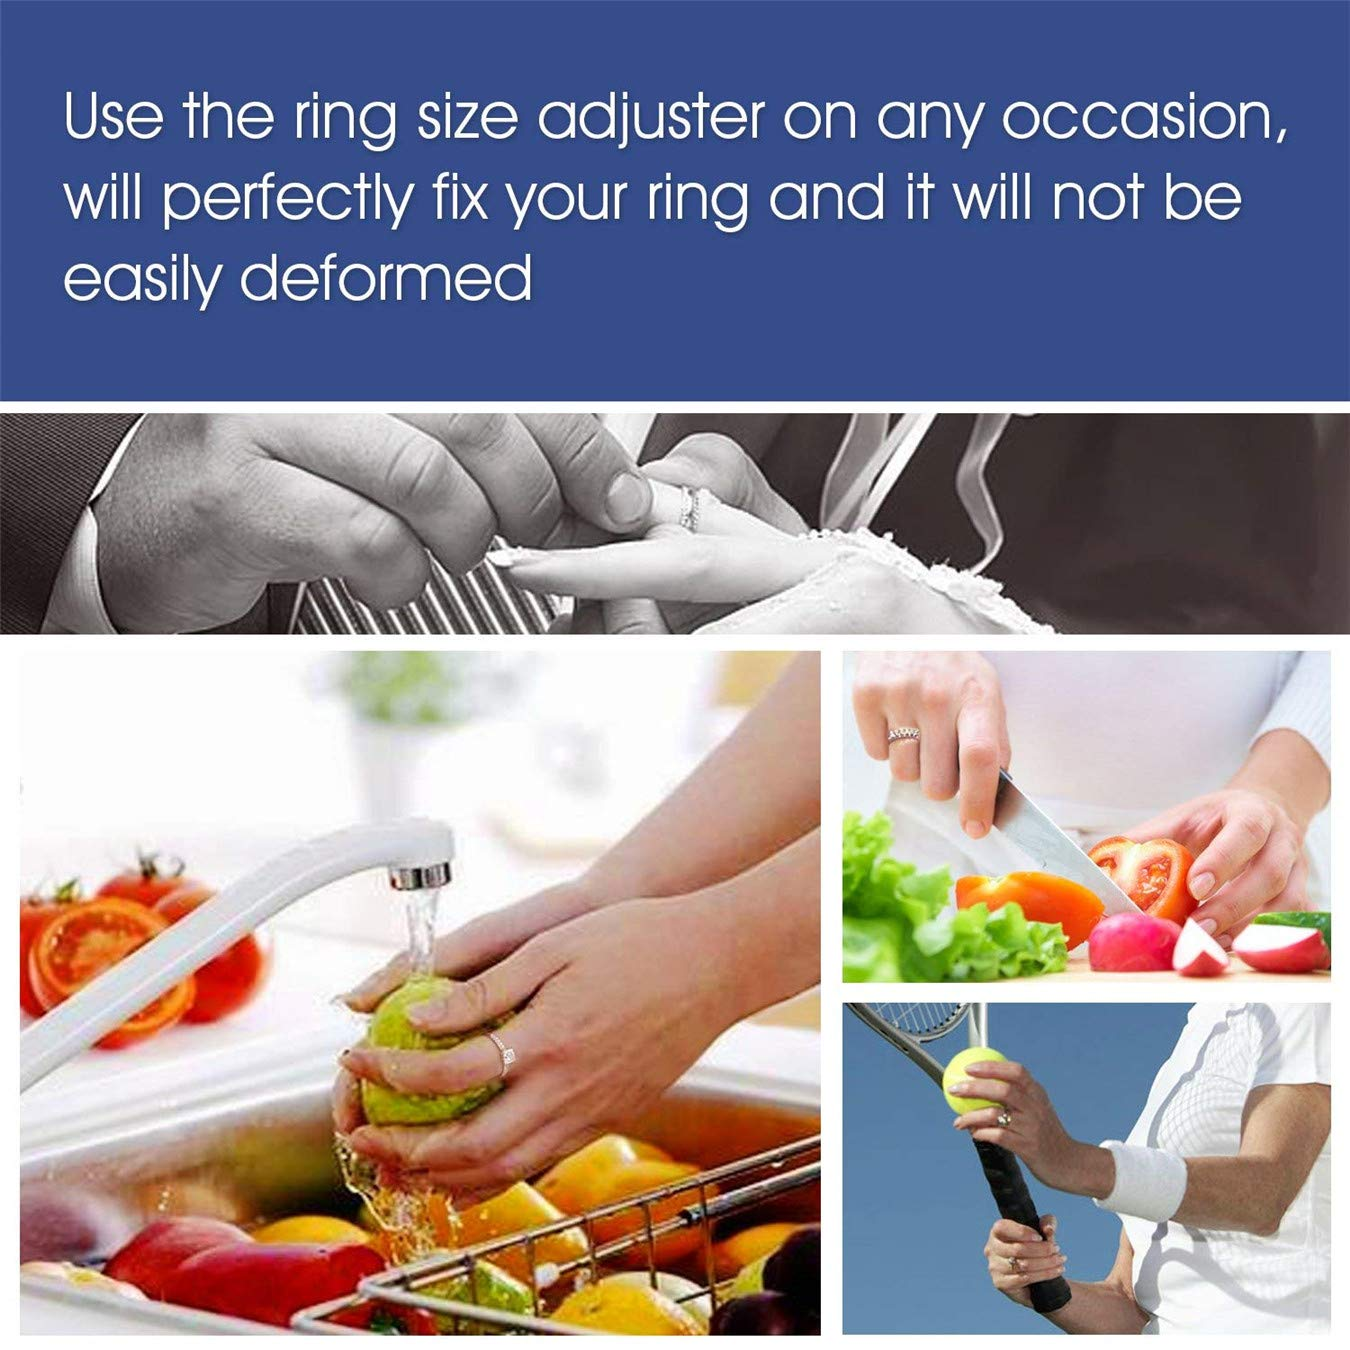 Yeasing Ring Size Adjuster Invisible Transparent Silicone Guard Clip Snug for Loose Rings Jewelry Sizer Tightener Resizer 4 Sizes Fit Almost All Fingers 6 Pcs